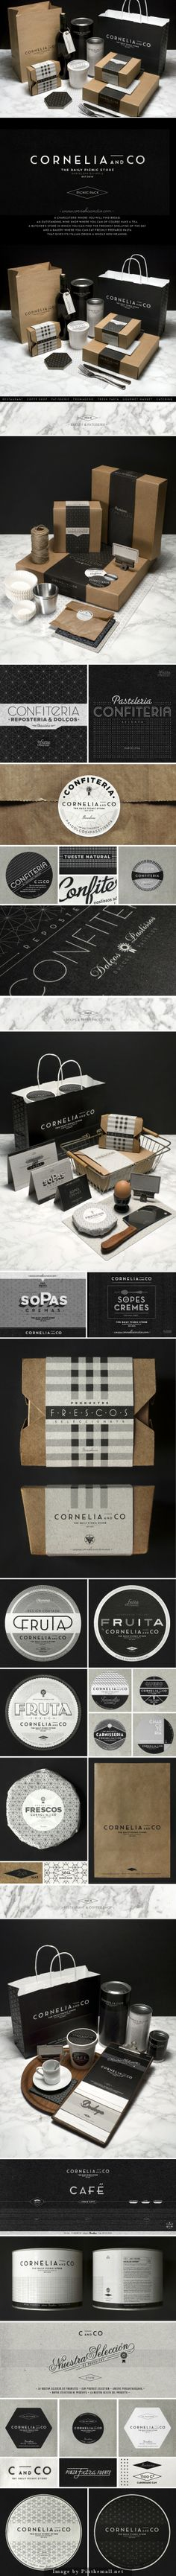 Oldie but goodie gorgeous Cornelia  Co #identity #packaging #branding curated by Packaging Diva PD created via http://creativedesignmag.com/cornelia-co-brand-identity-packaging-design/